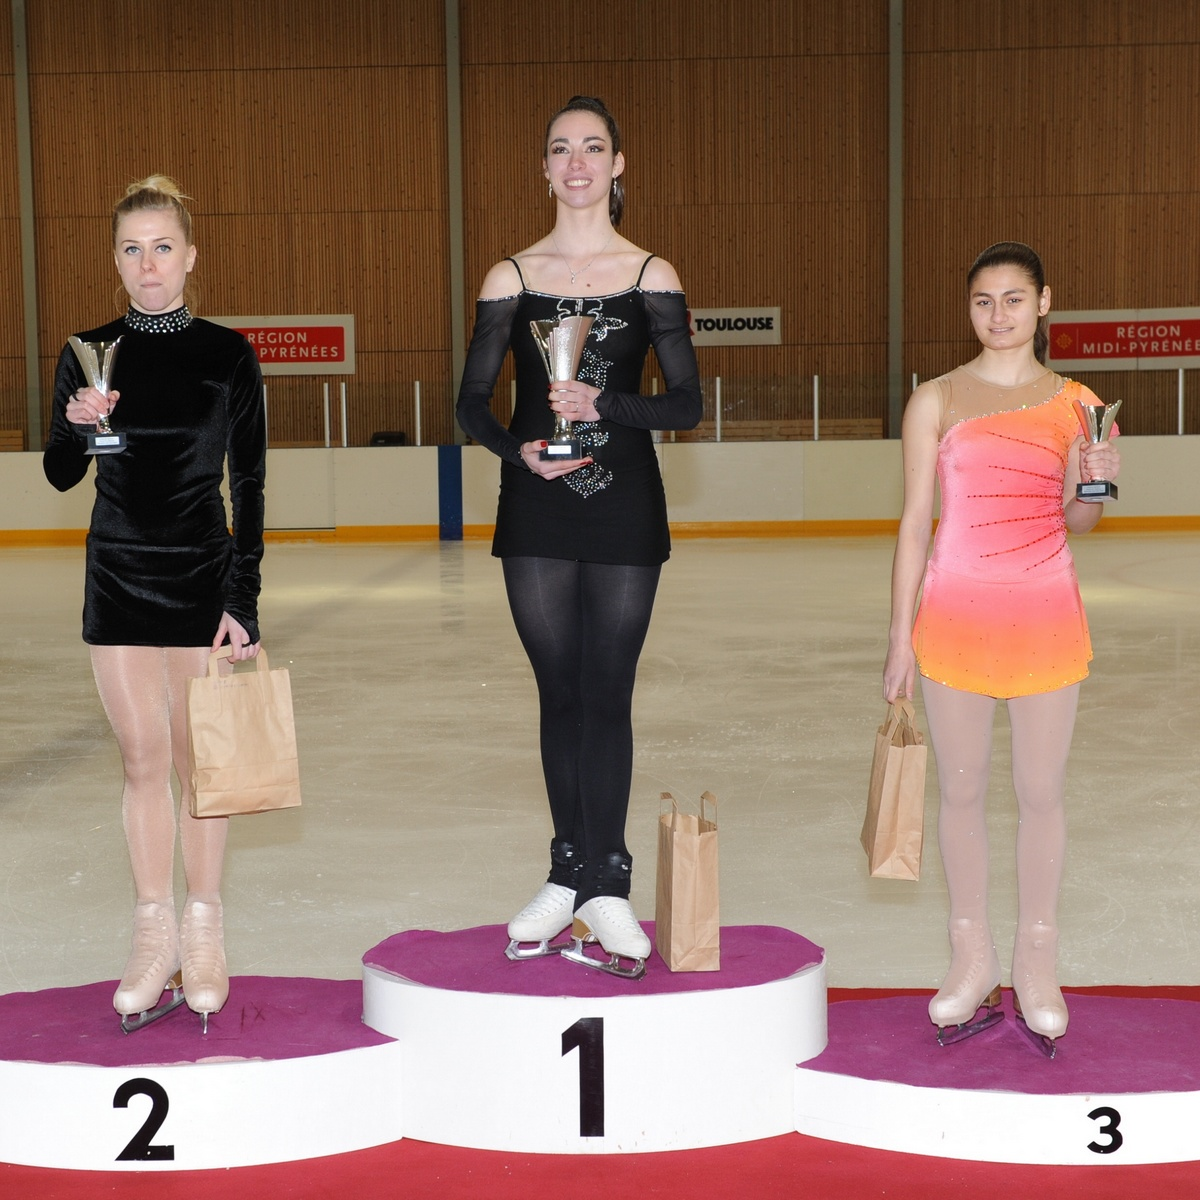 gpns-1-senior-dames-b-4424dimanc_podium